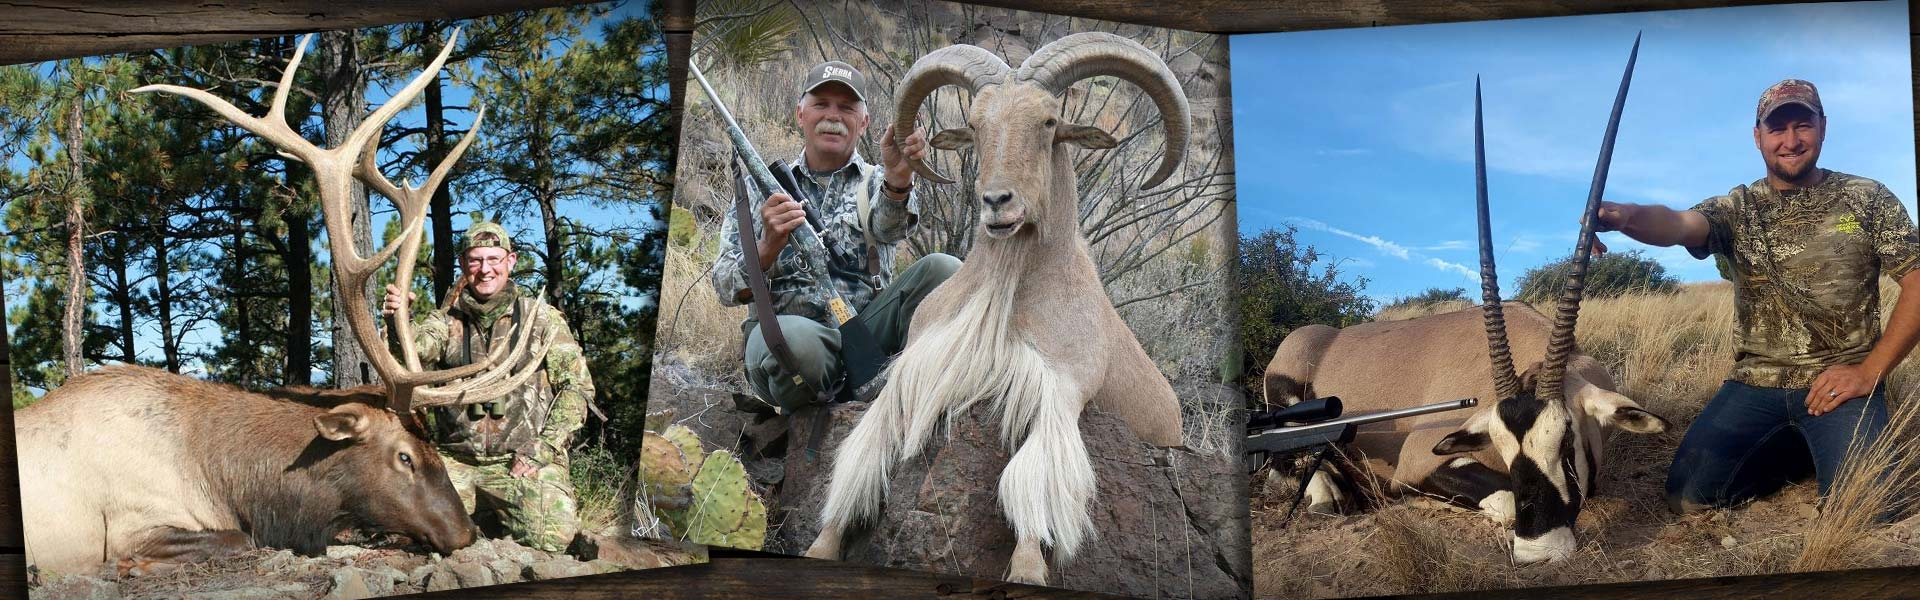 Big Rim Outfitters - Photo Gallery